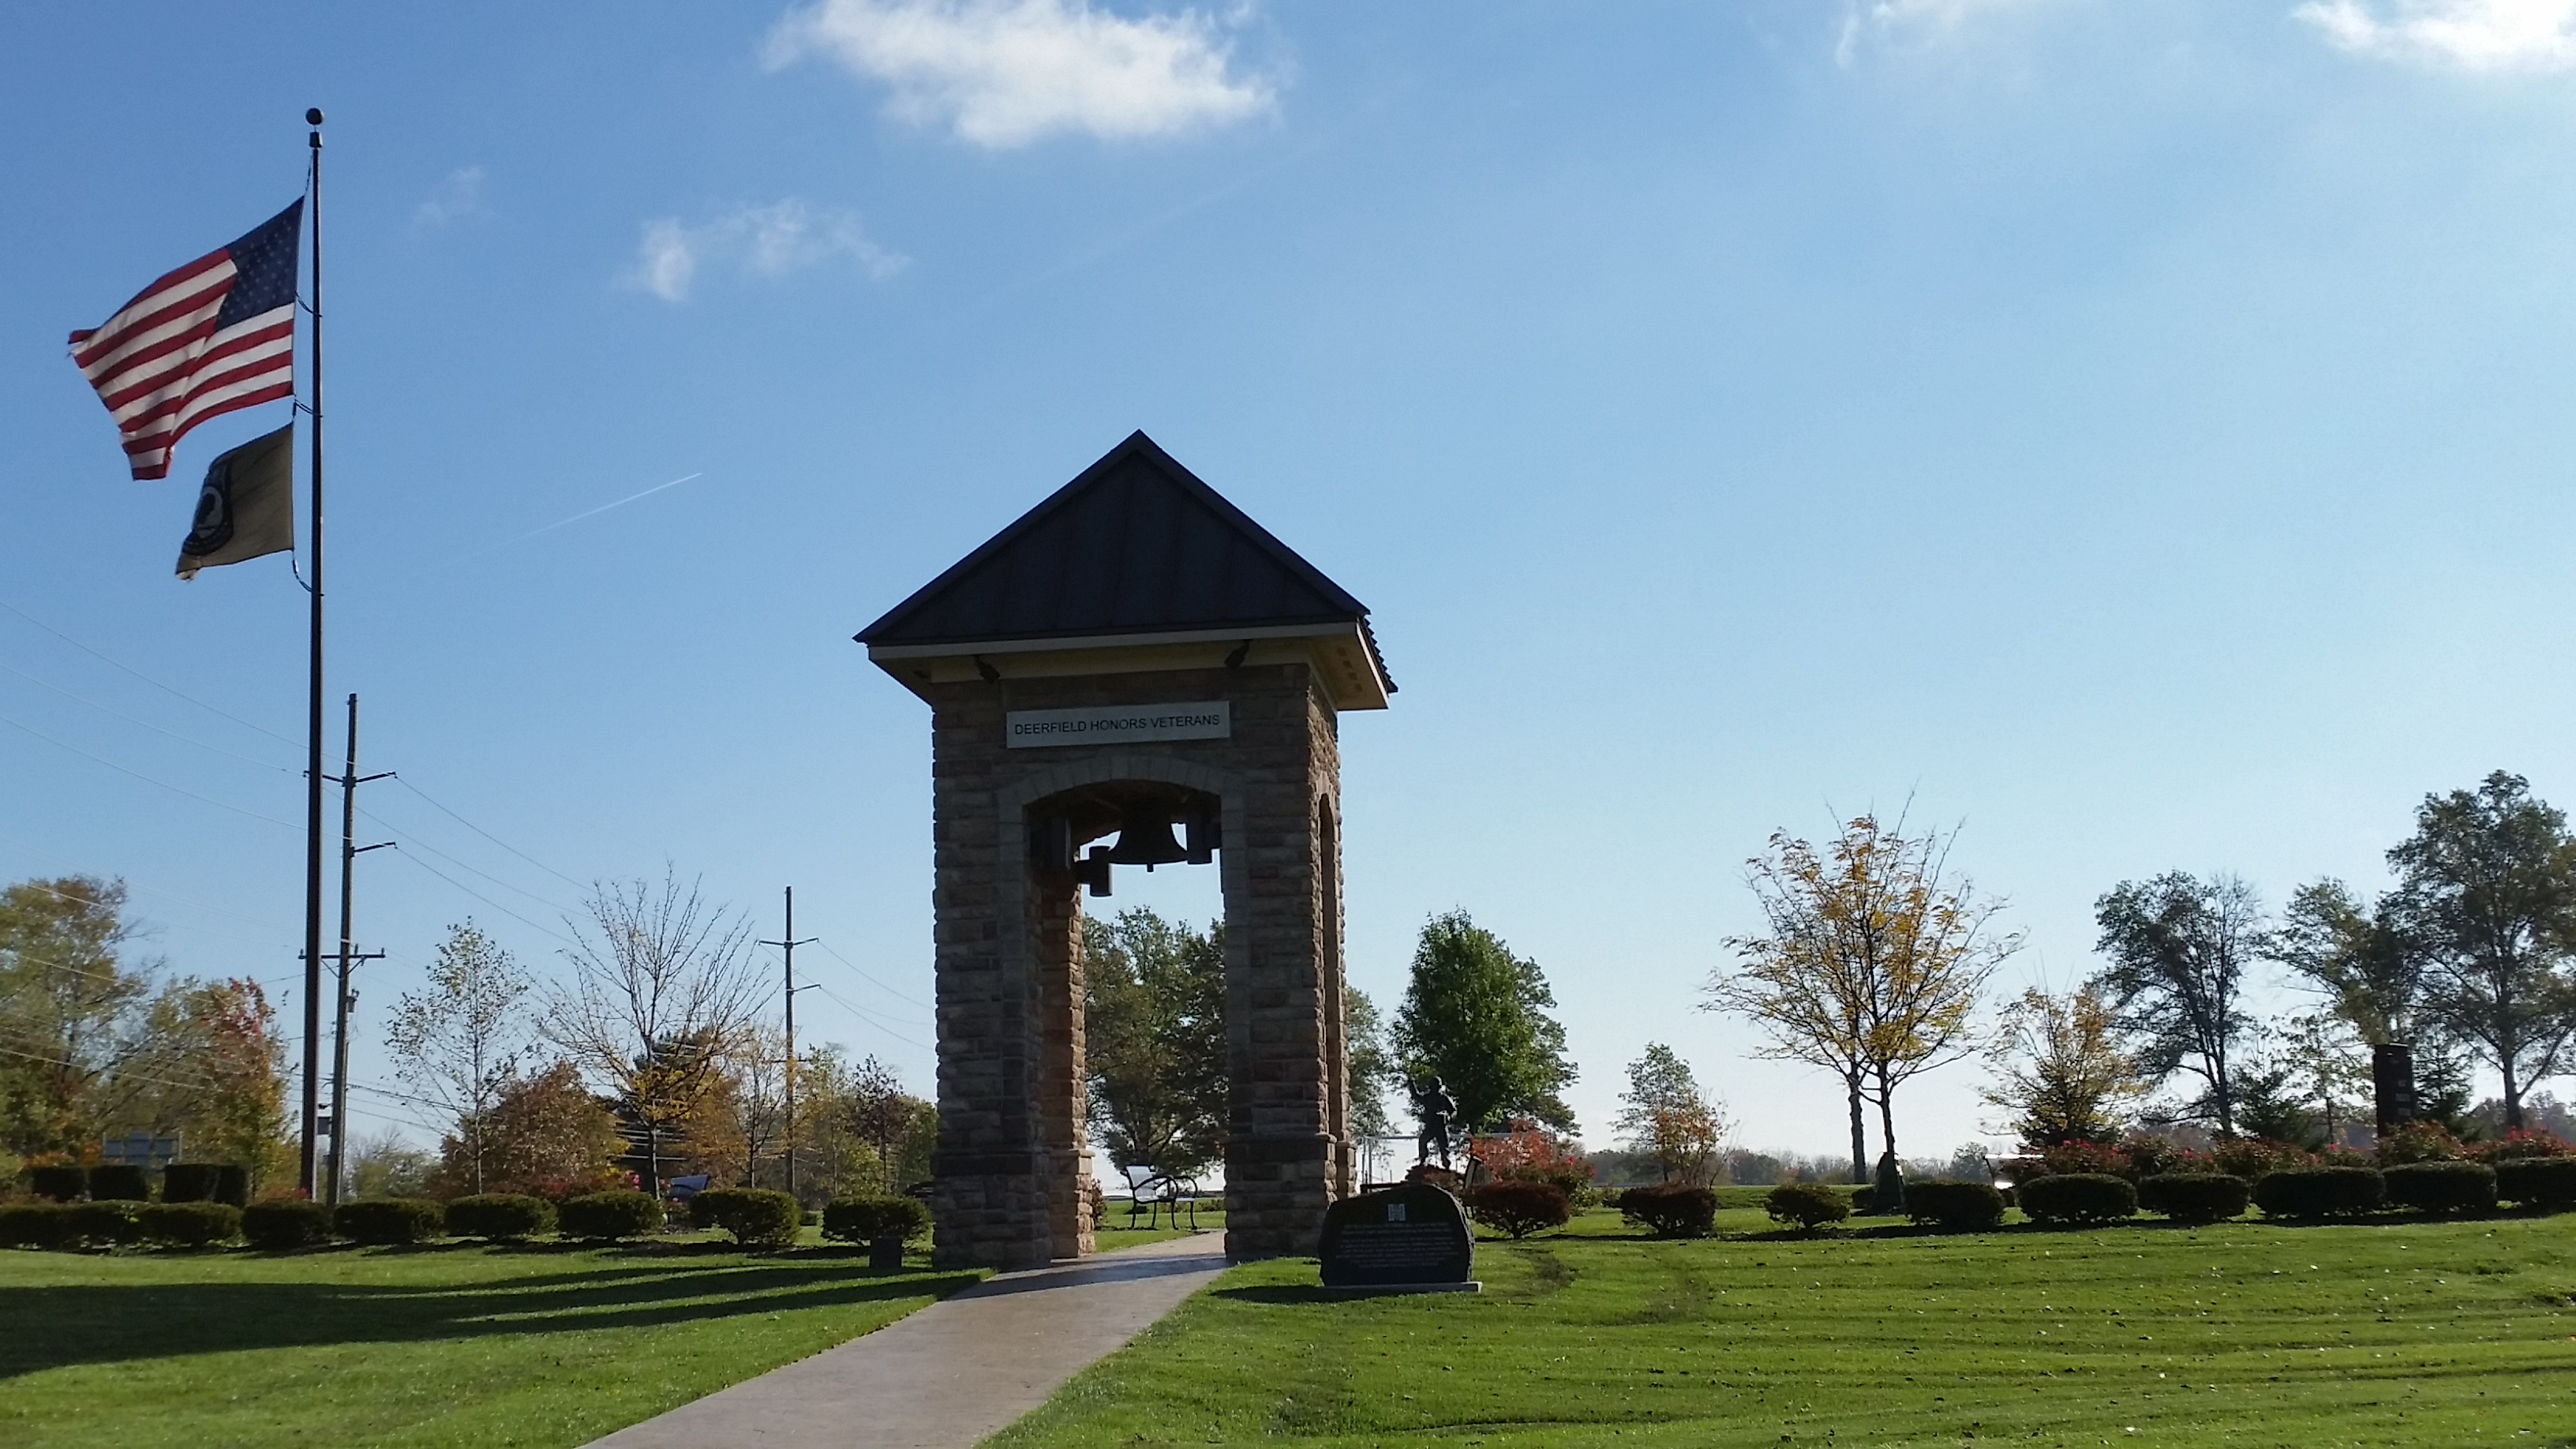 Deerfield Honors Veterans Park